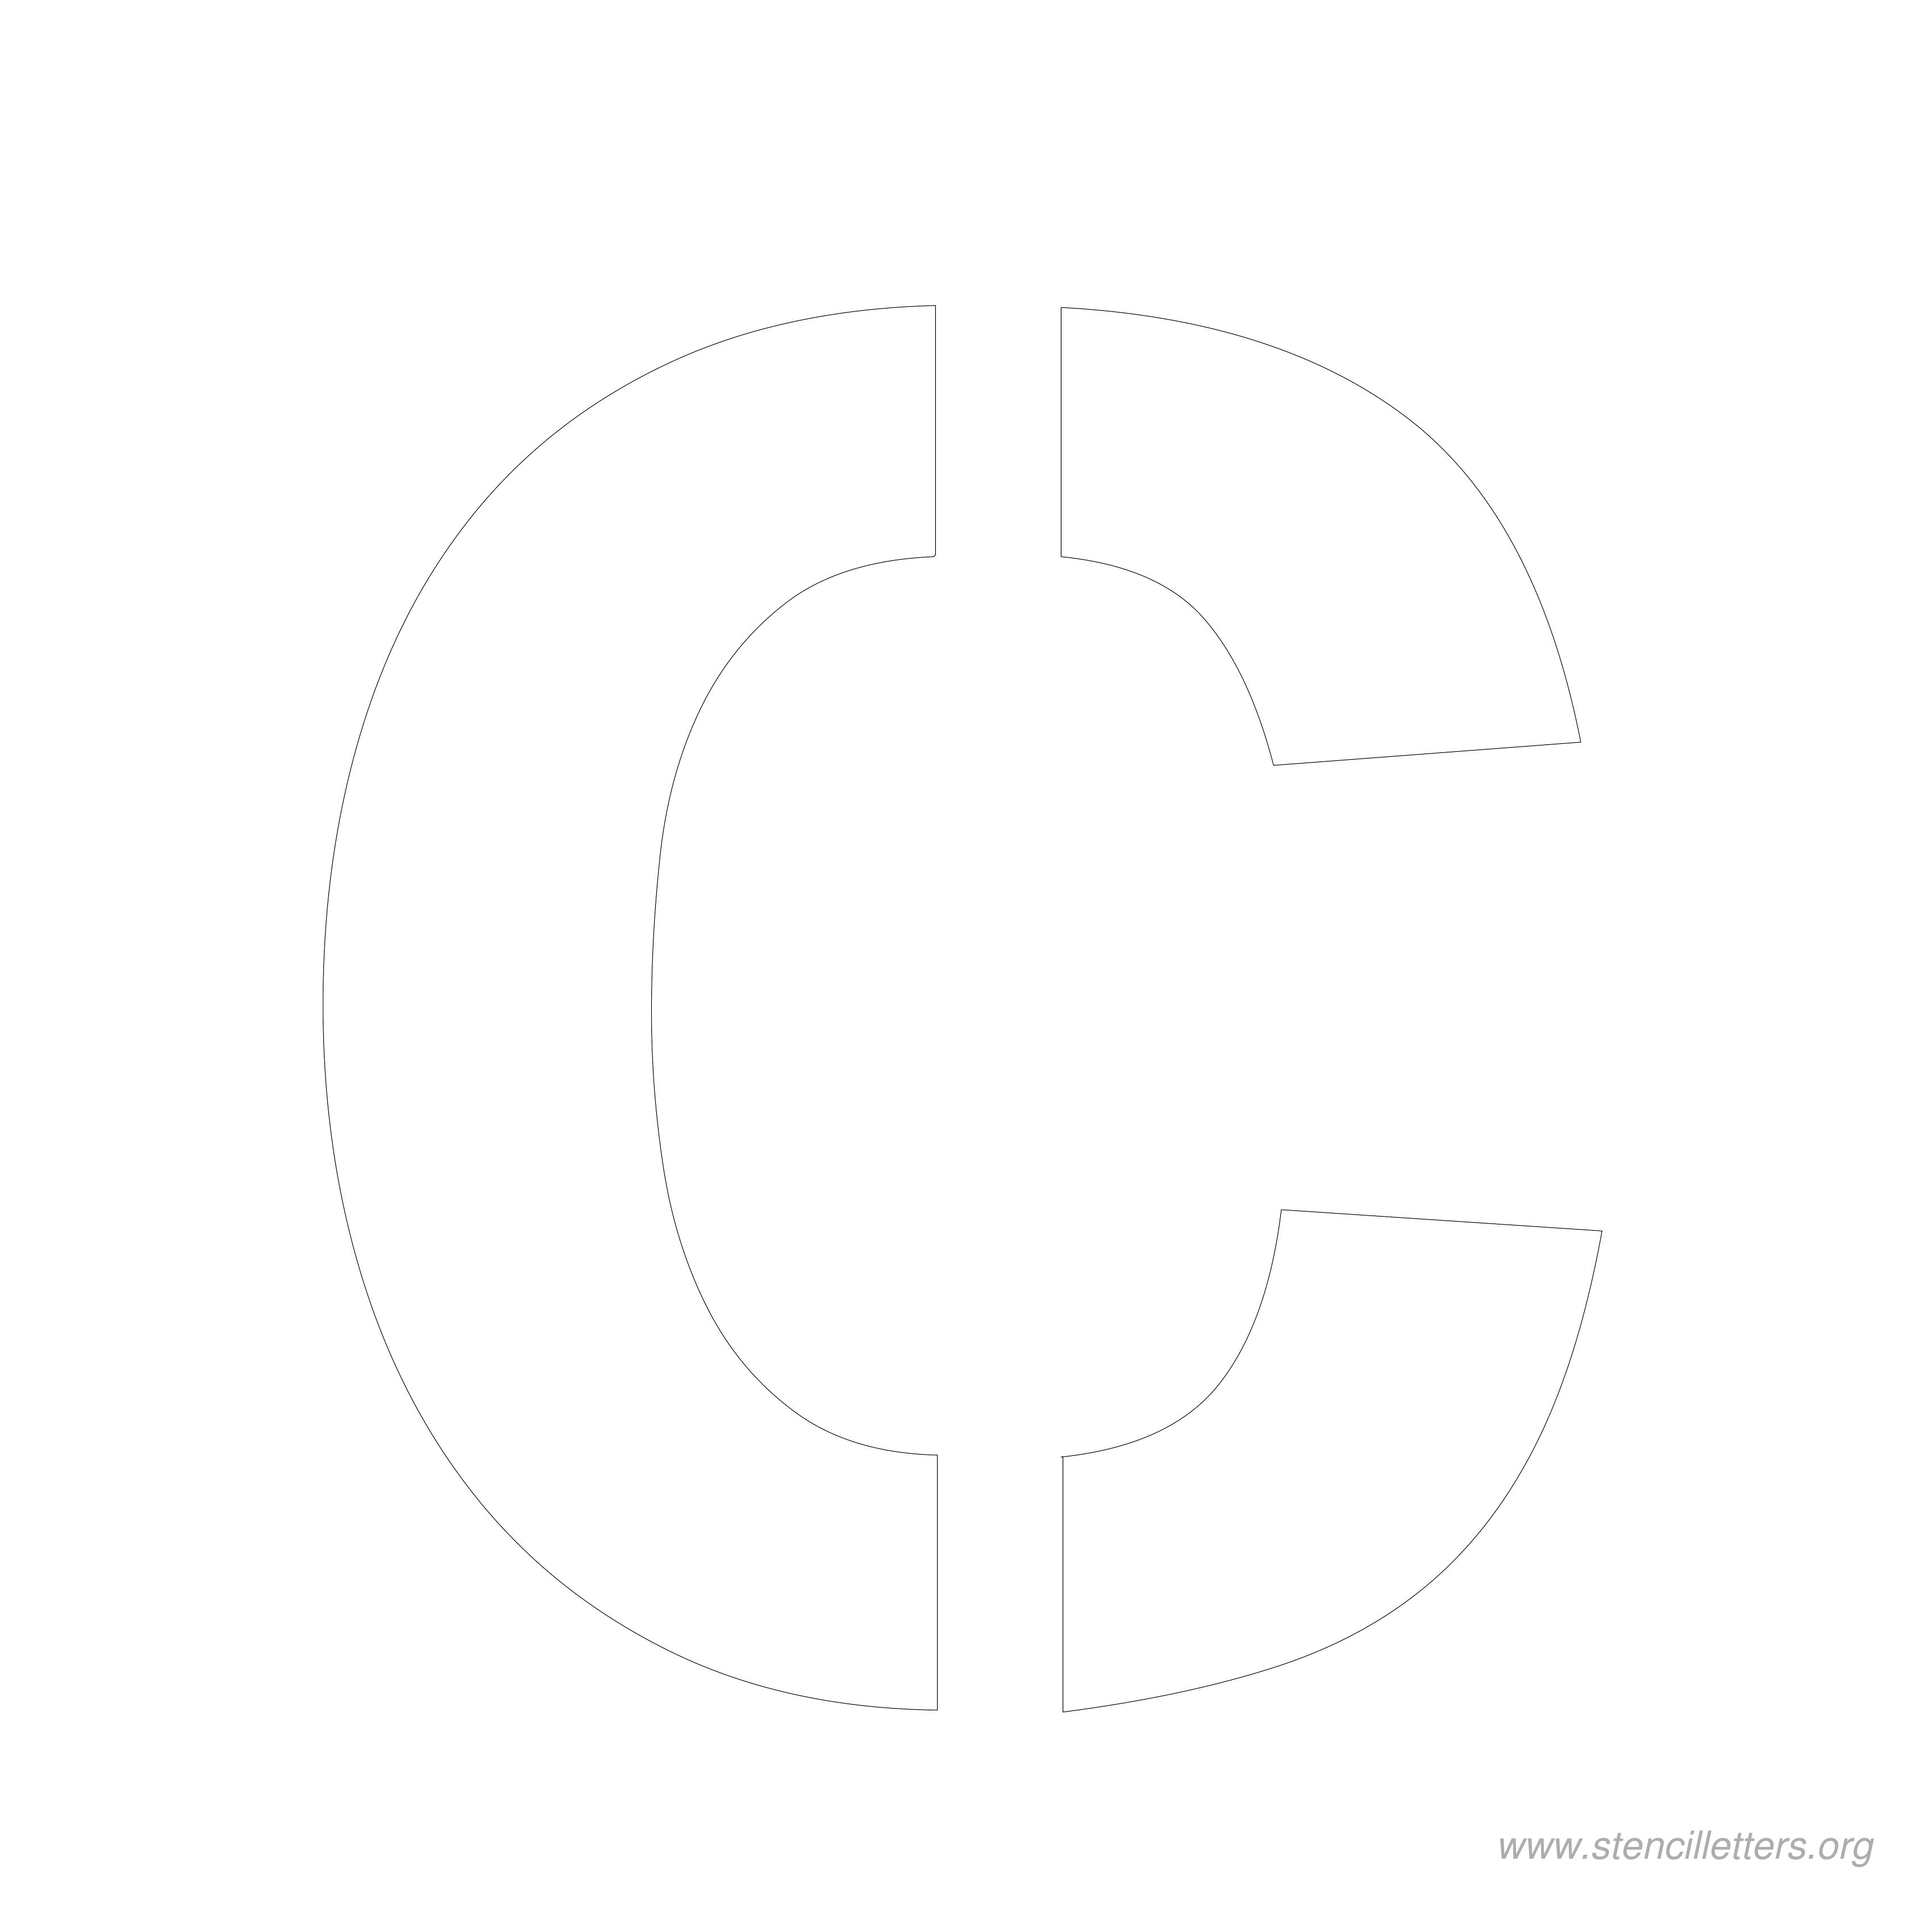 8 Inch Stencil Letters | Stencil Letters Org - Free Printable 8 Inch Letters